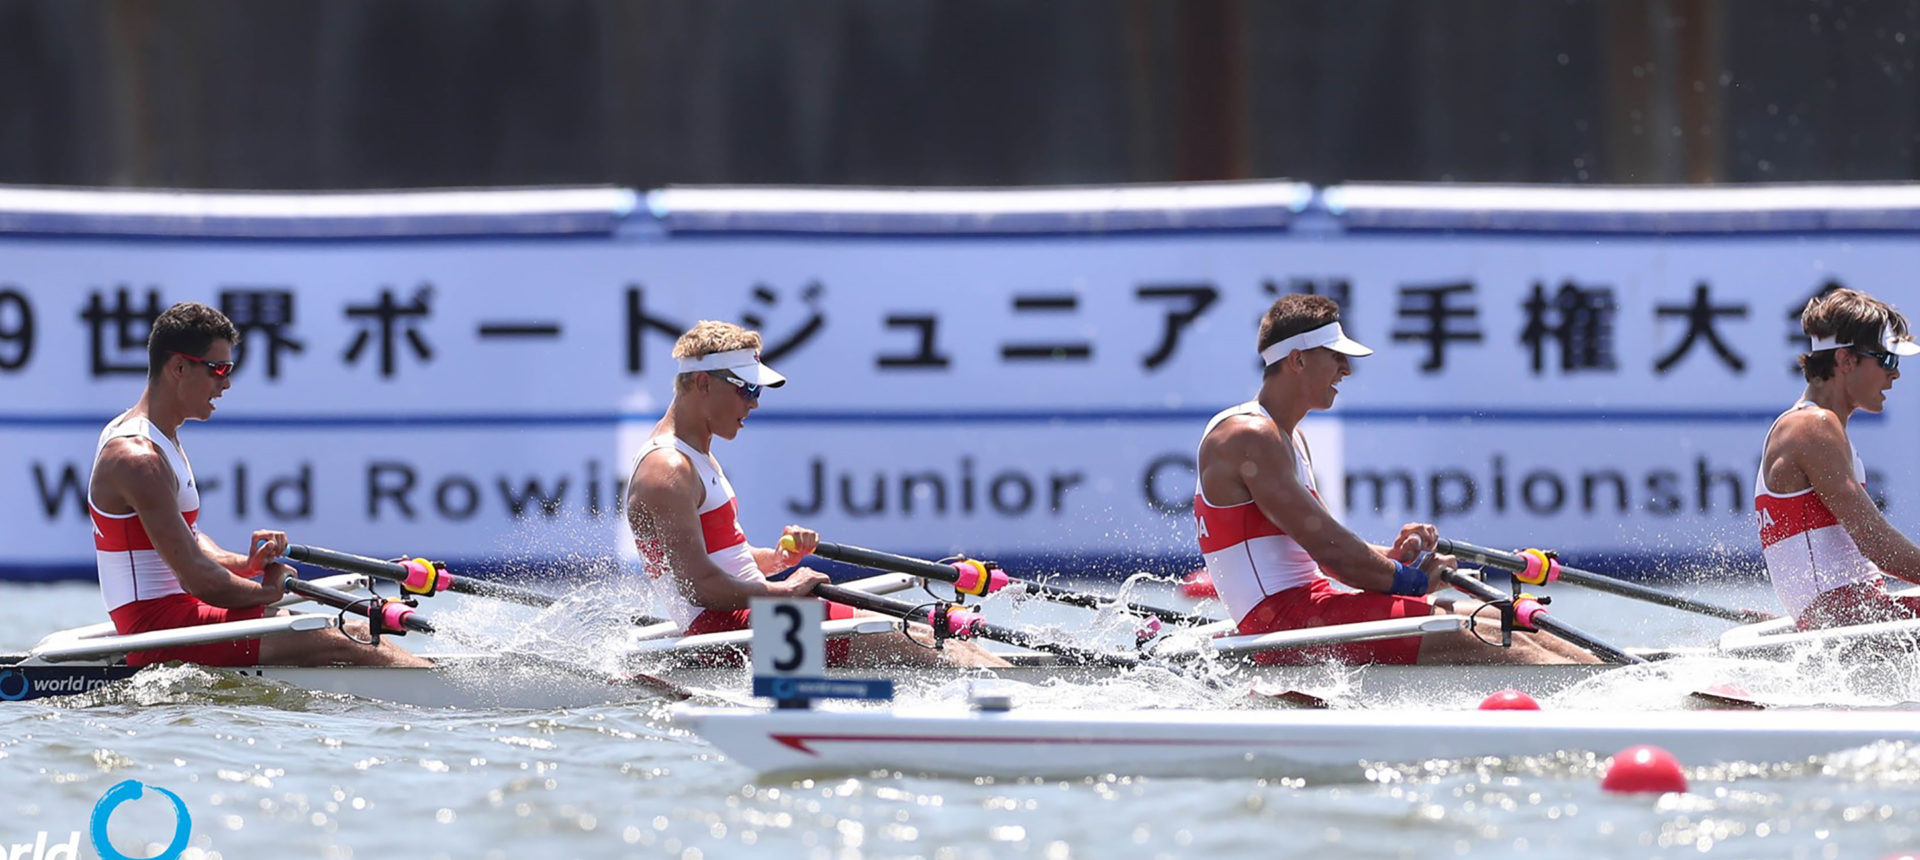 Three crews move on to World Juniors A/B semis